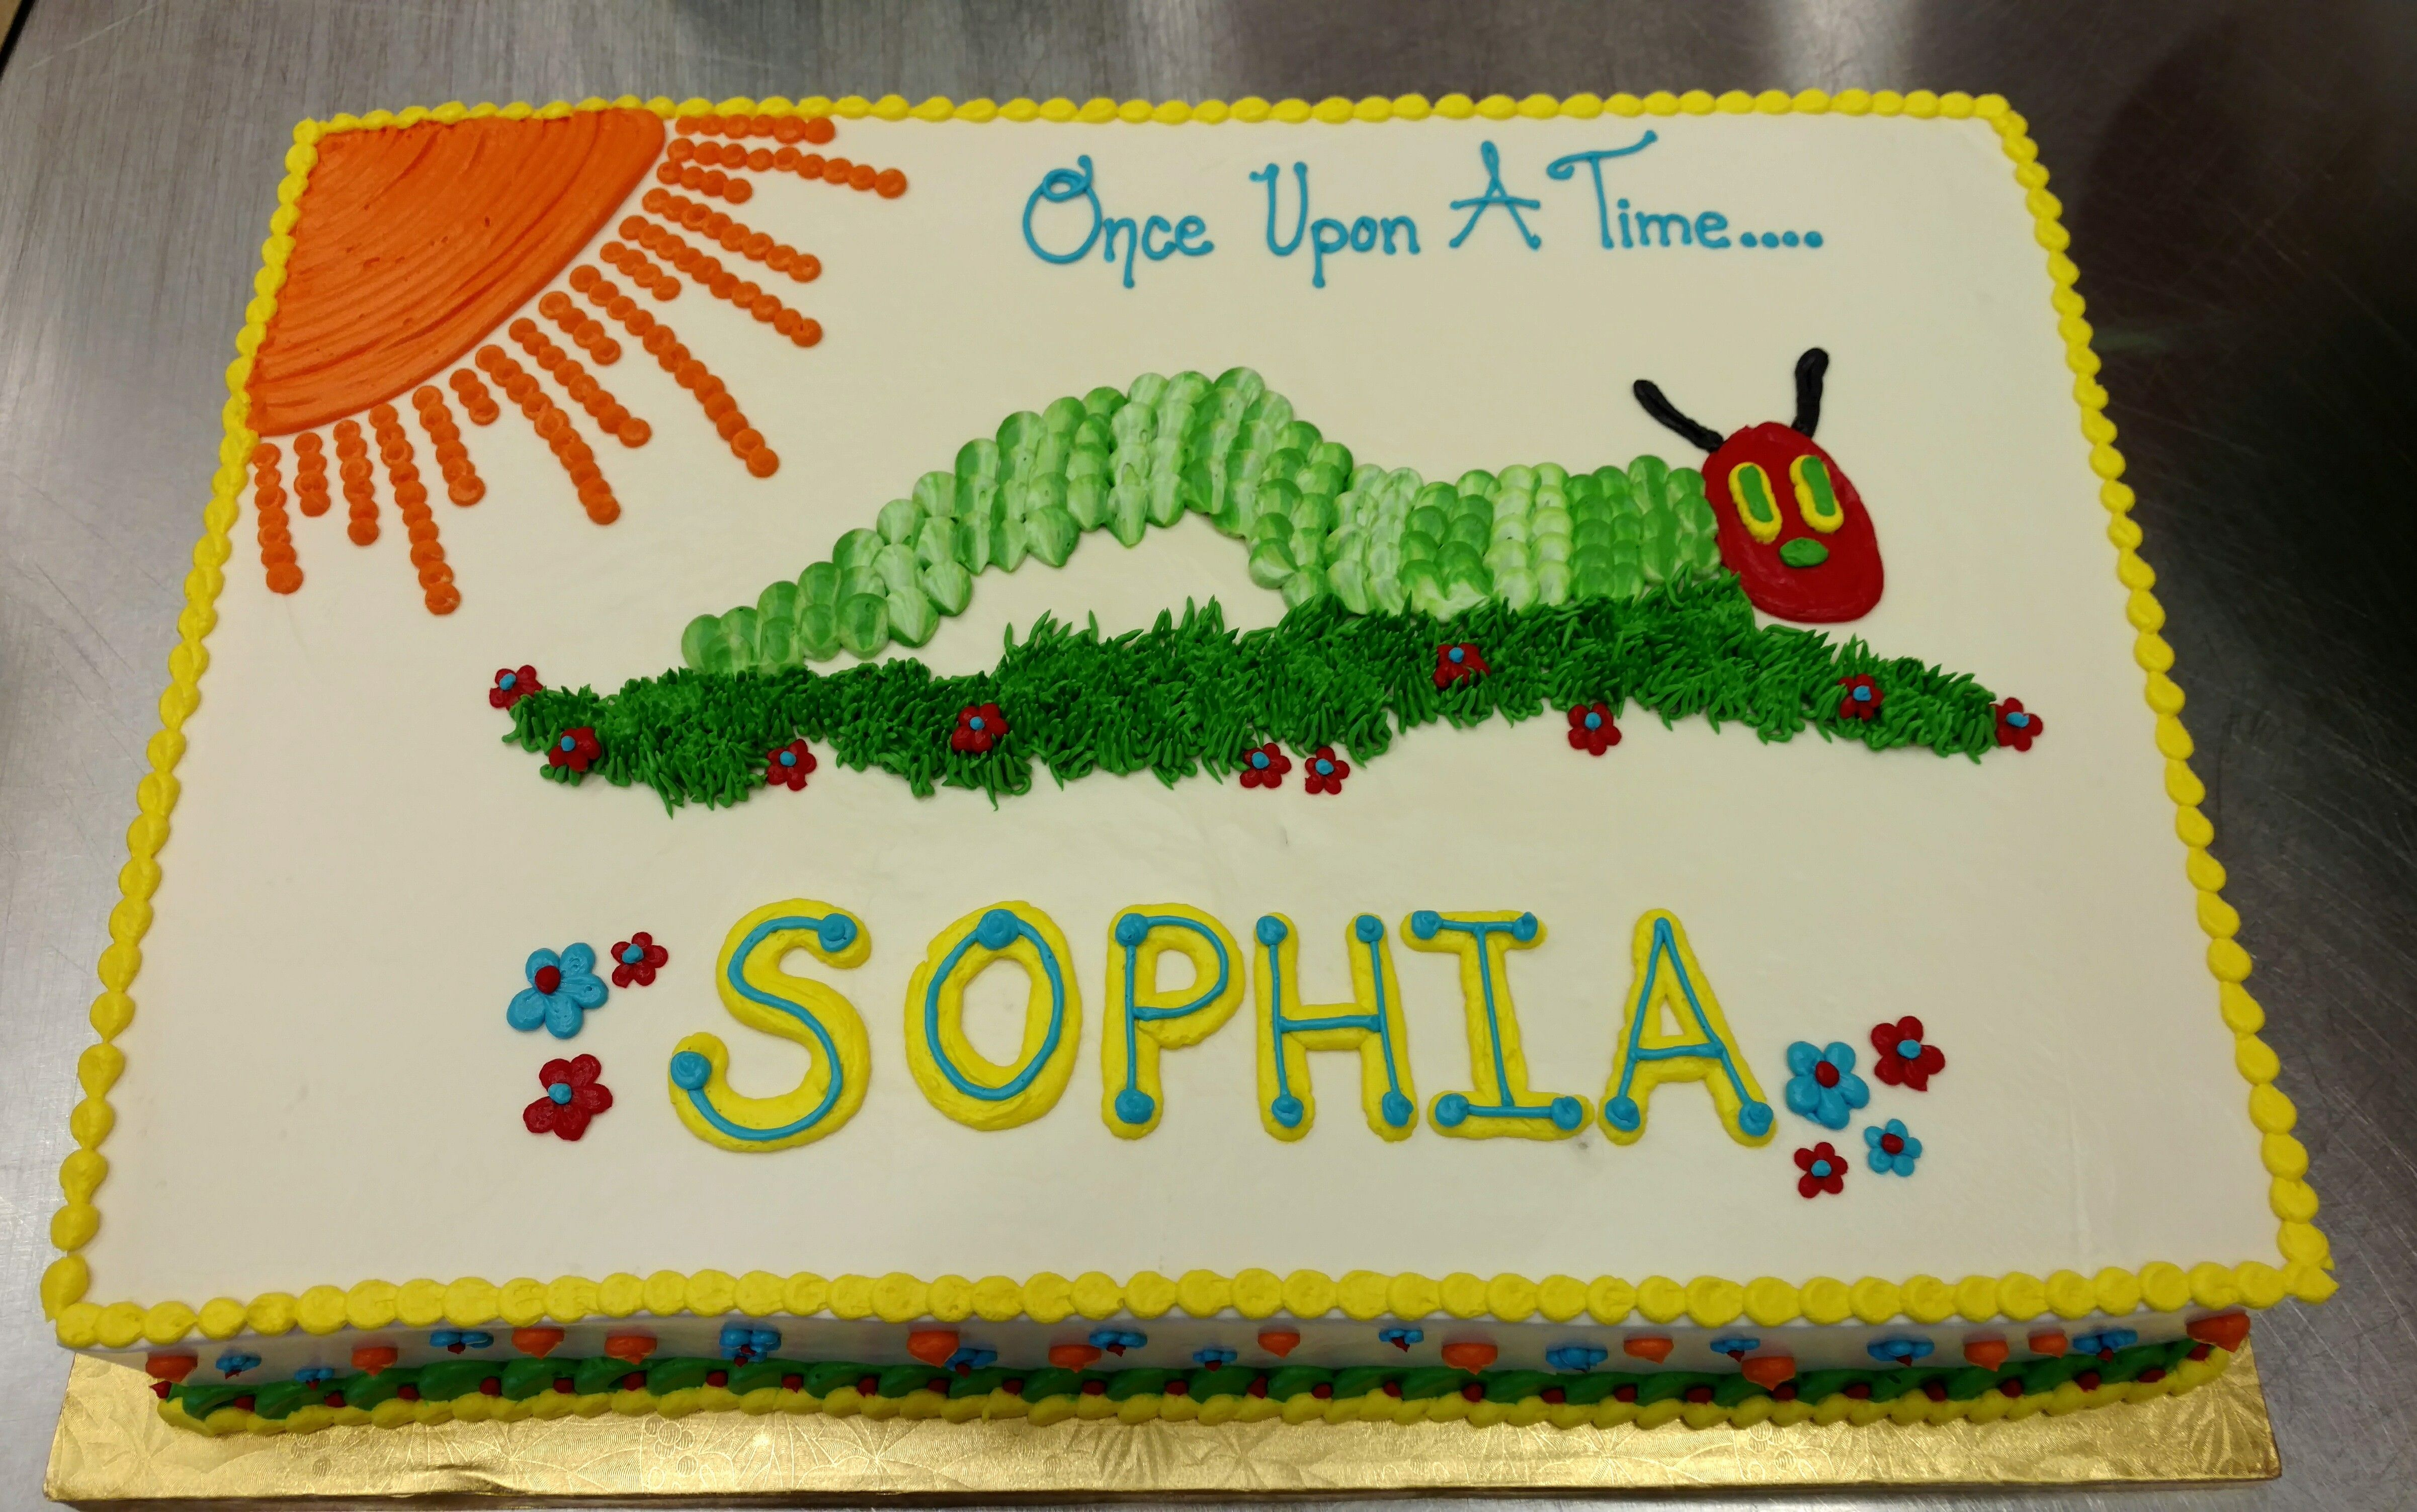 Once Upon A Time Sophia Had The Best Looking Hungry Caterpillar